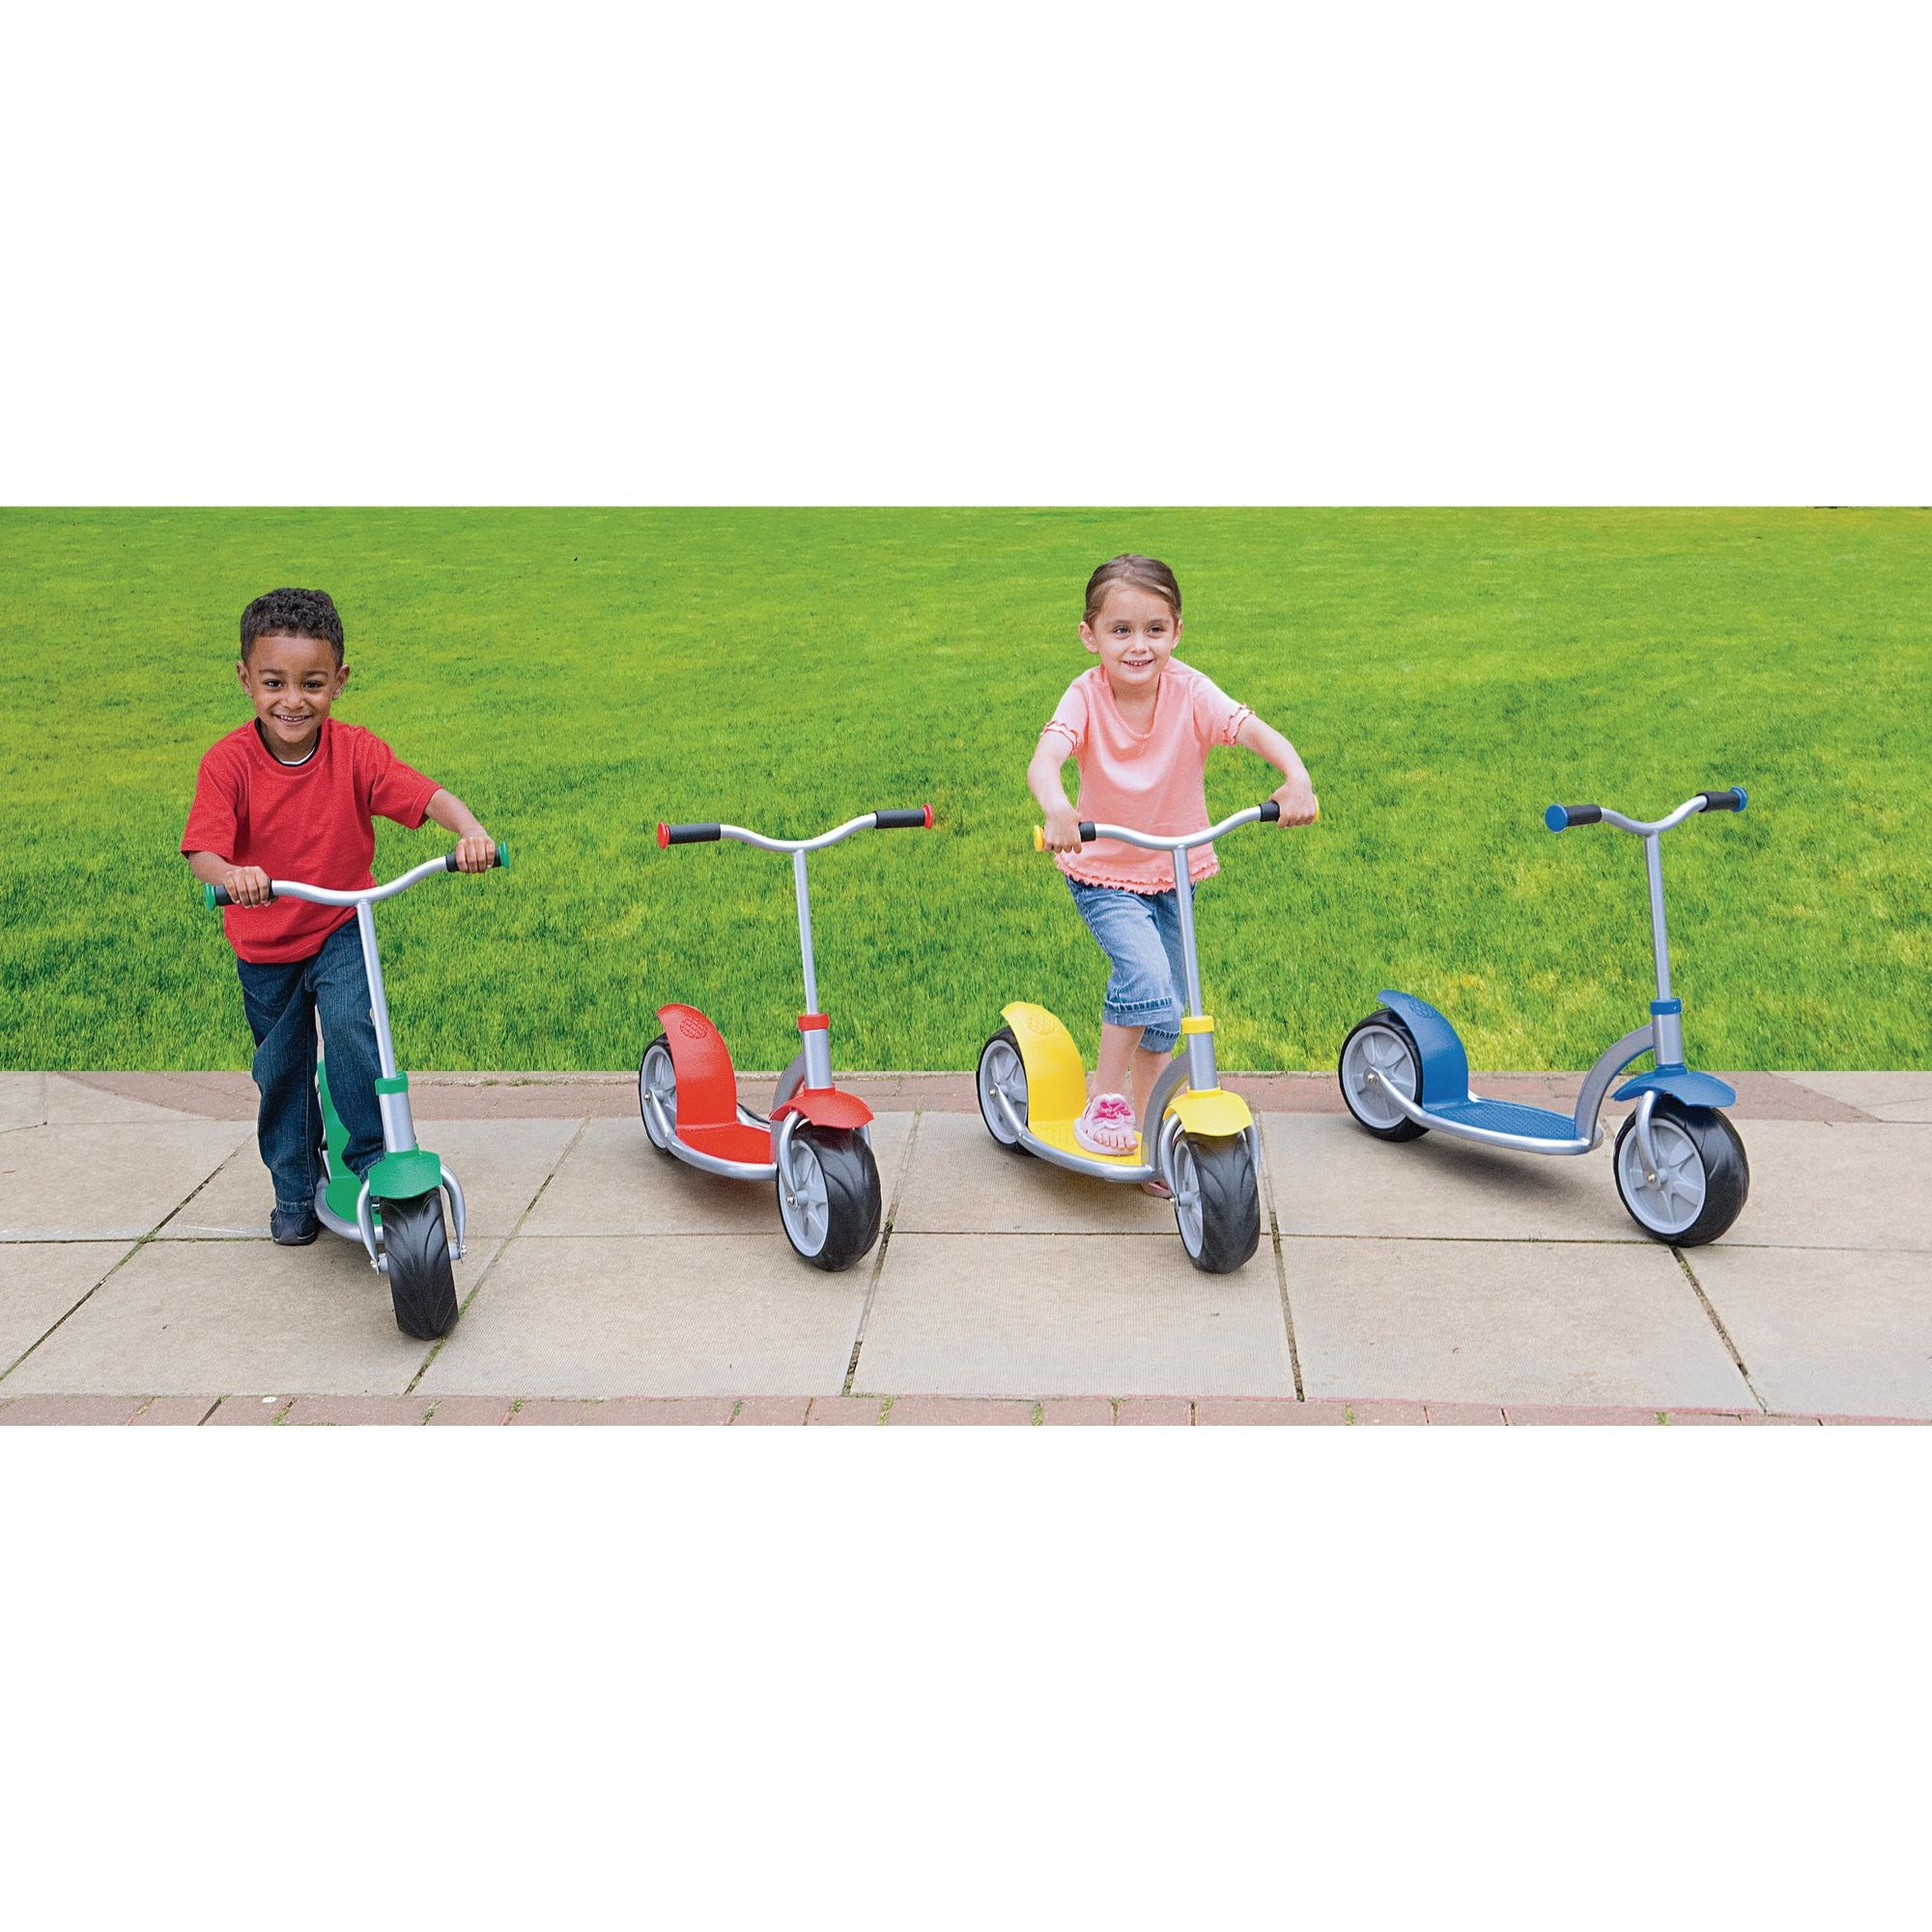 Scooter Offer - Buy 4